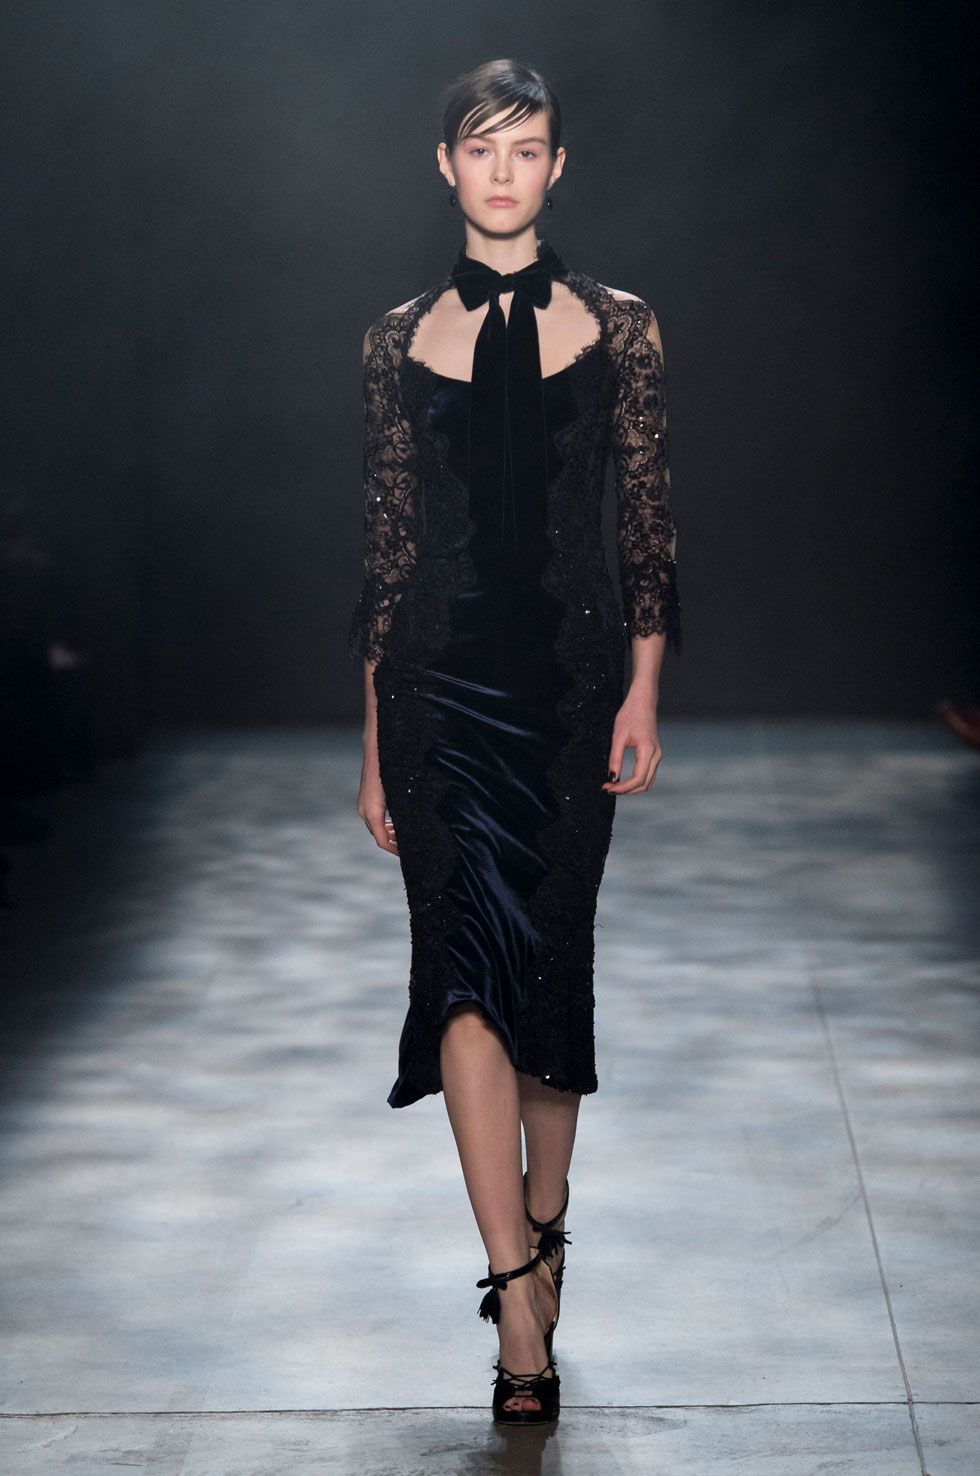 Looks From Marchesa Fall NYFW Show Marchesa Runway At - Mitsubishi academy